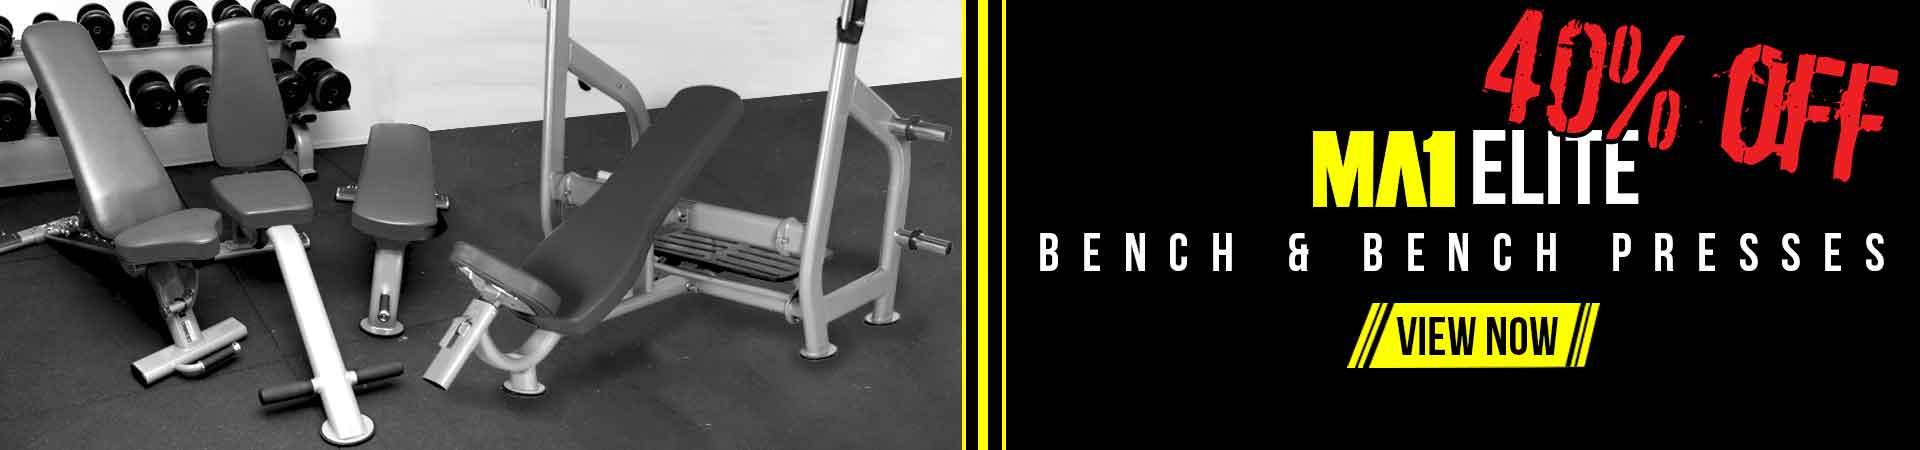 40% off MA1 Elite Benches & Bench Presses